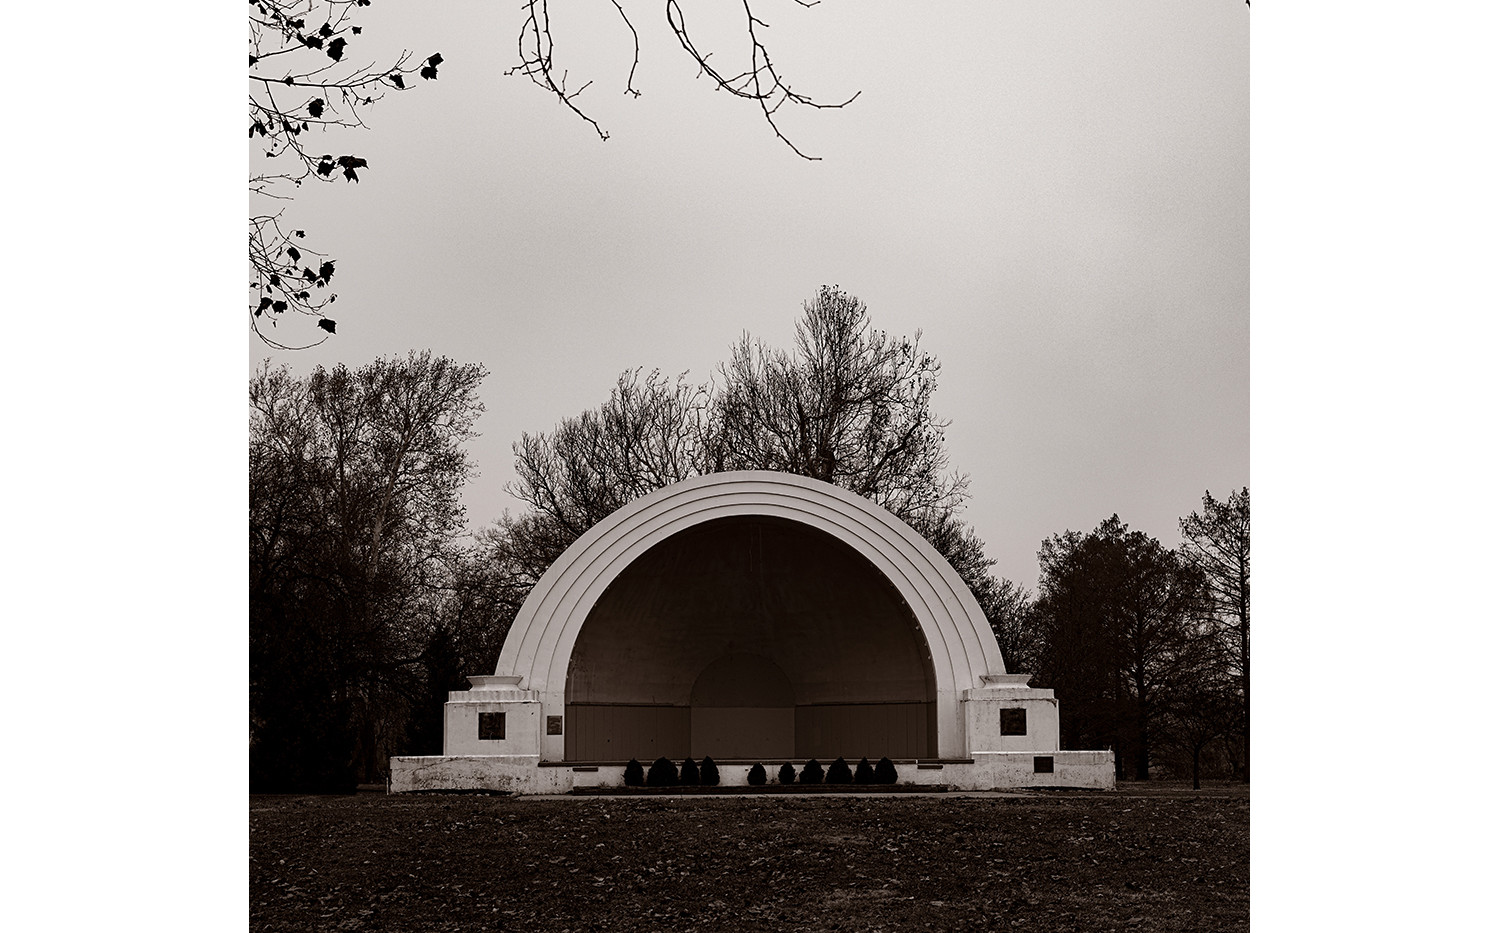 Abandoned band shell